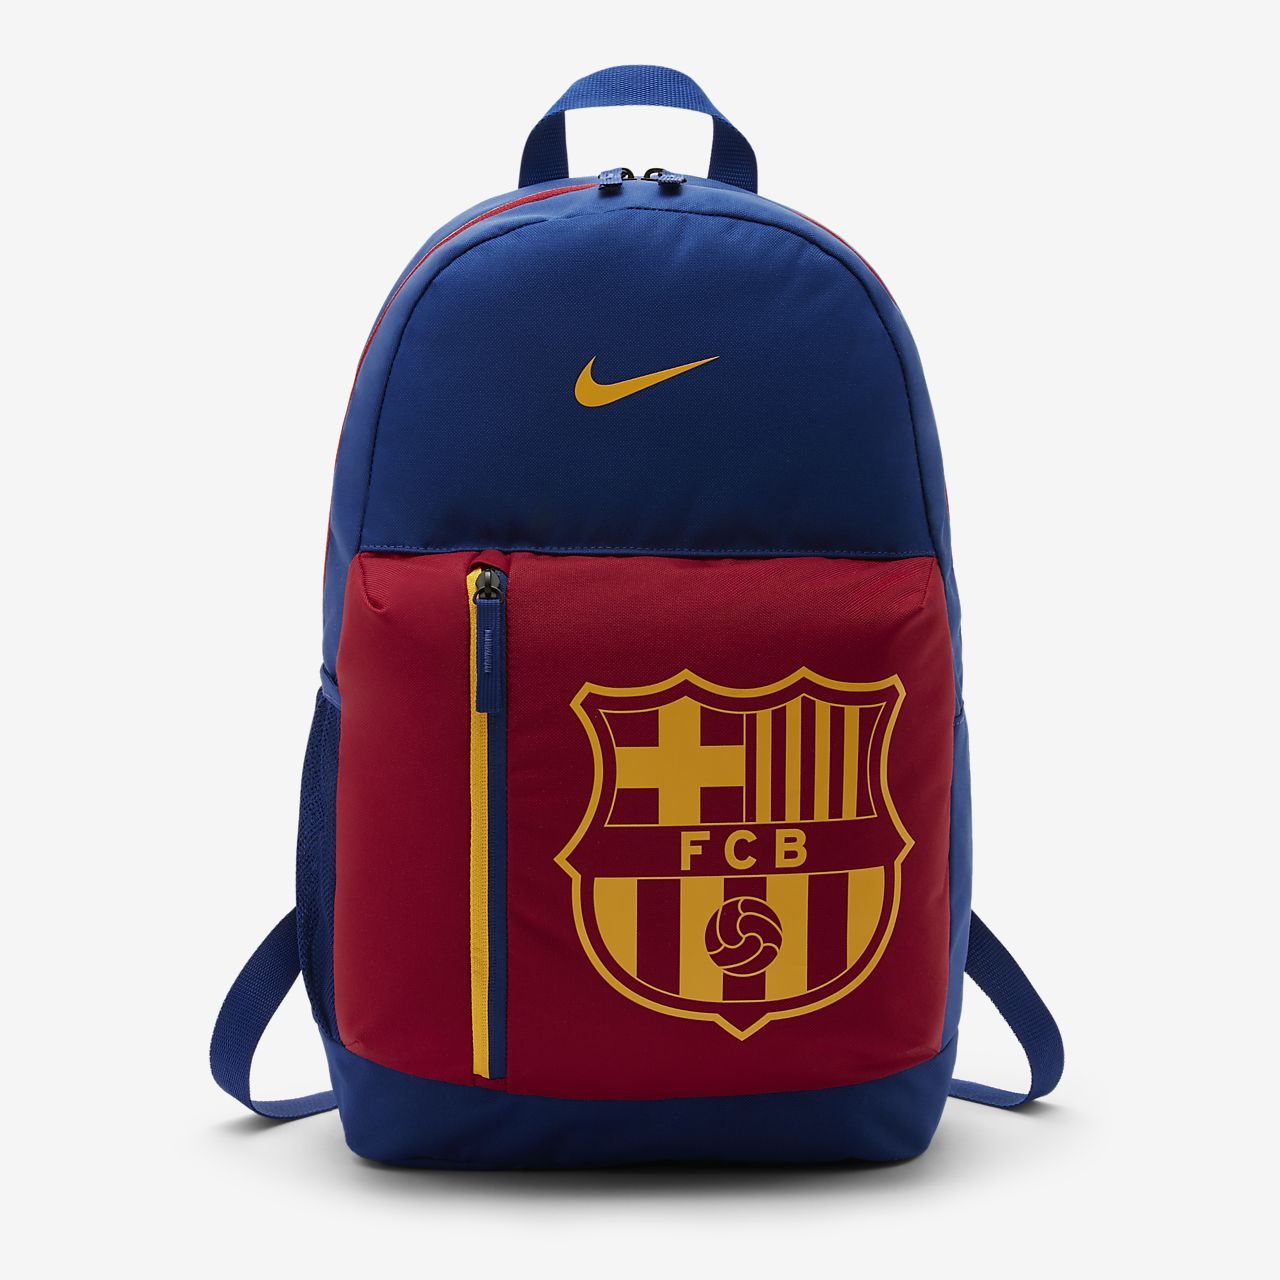 27c310091 FC Barcelona Stadium Kids' Football Backpack. Nike.com AE